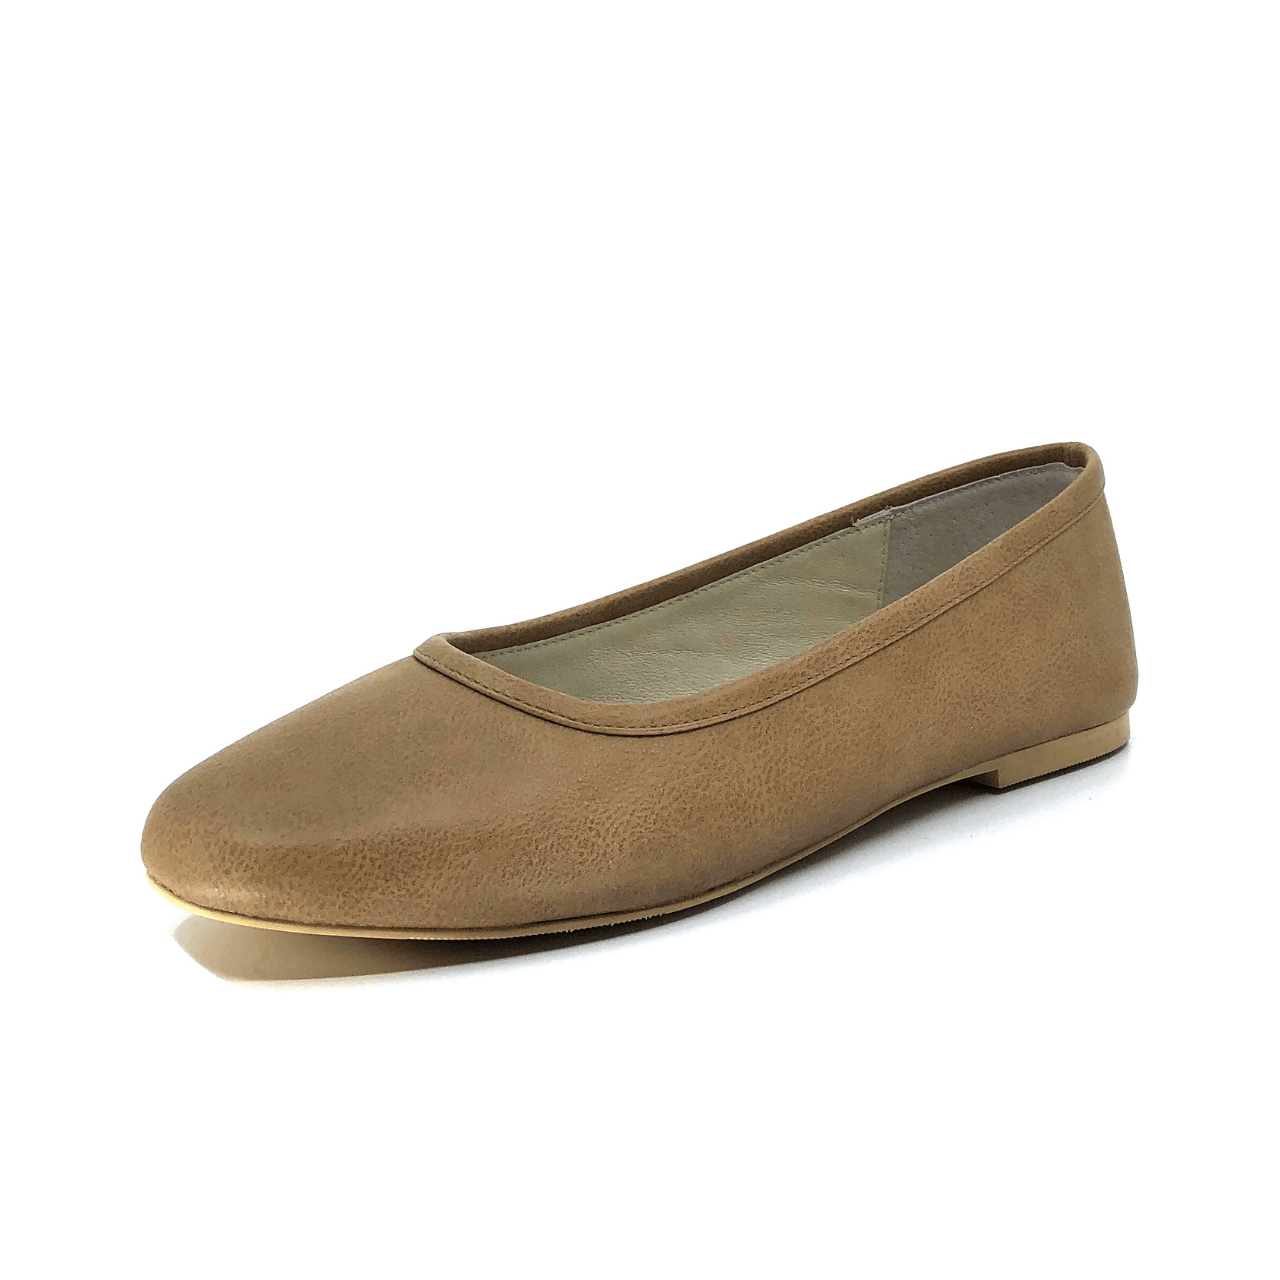 Nude Casual Ballet Flat I Mia by Scarlettos